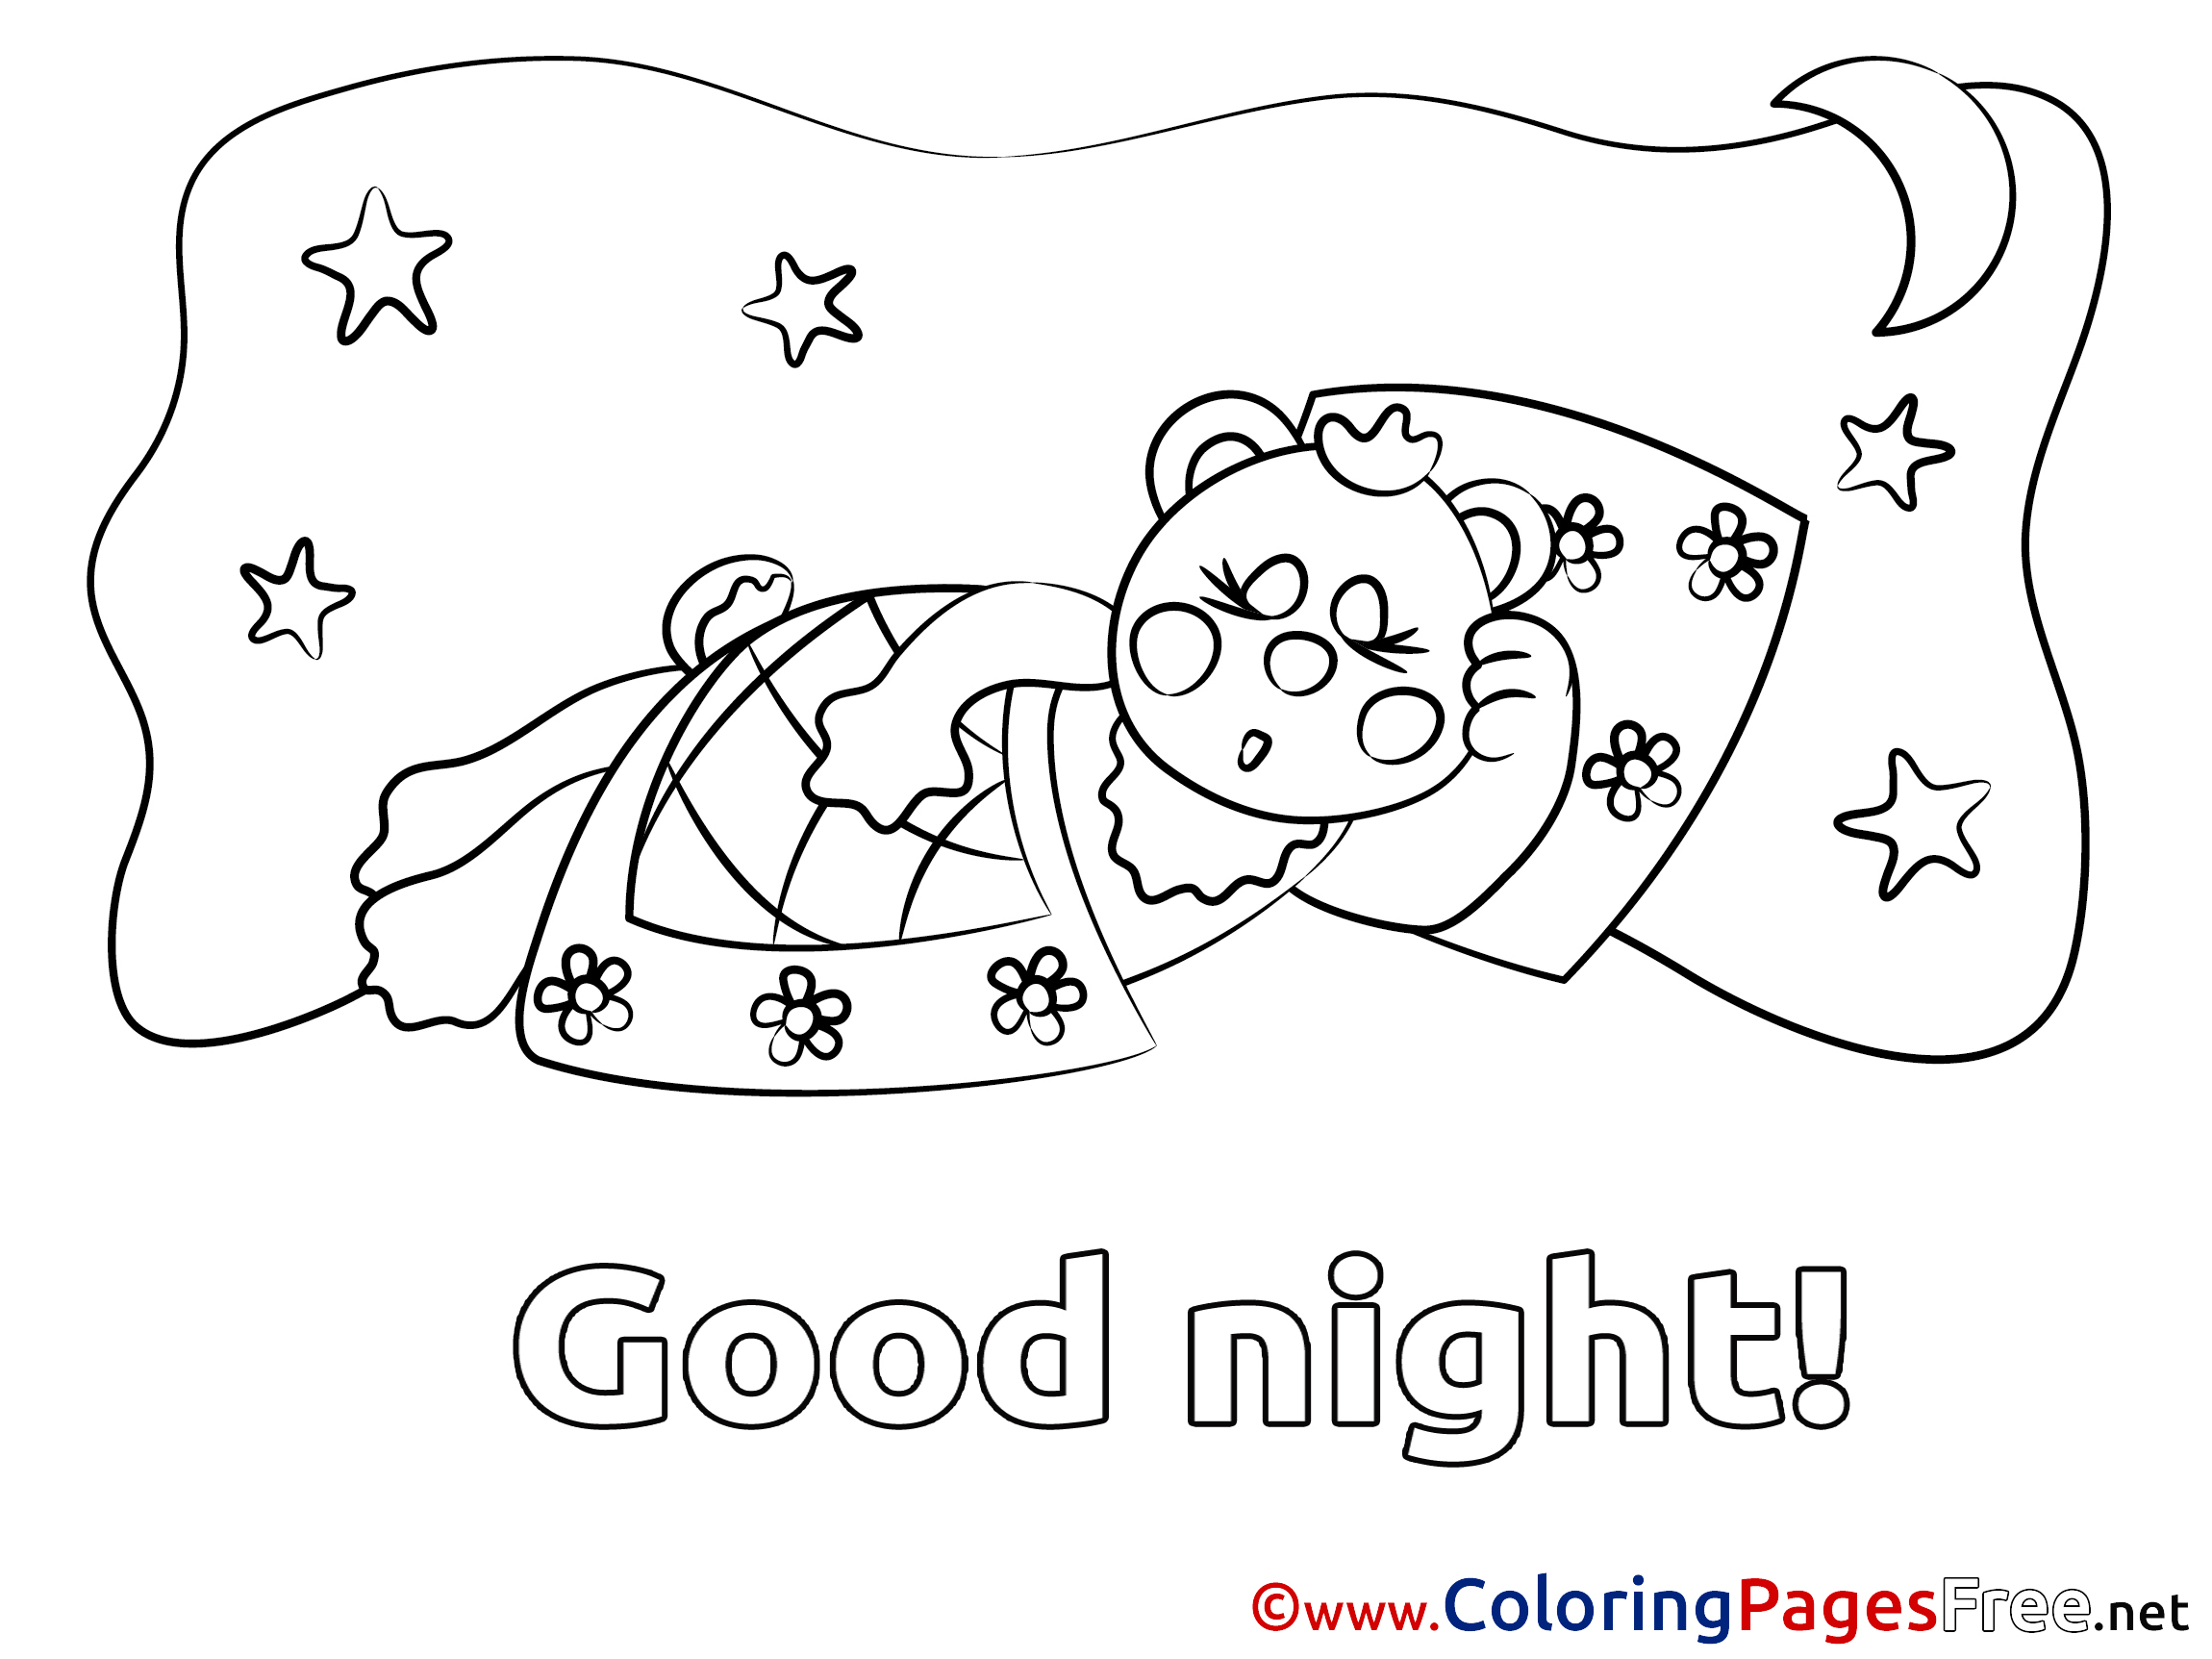 Good Afternoon Coloring Page